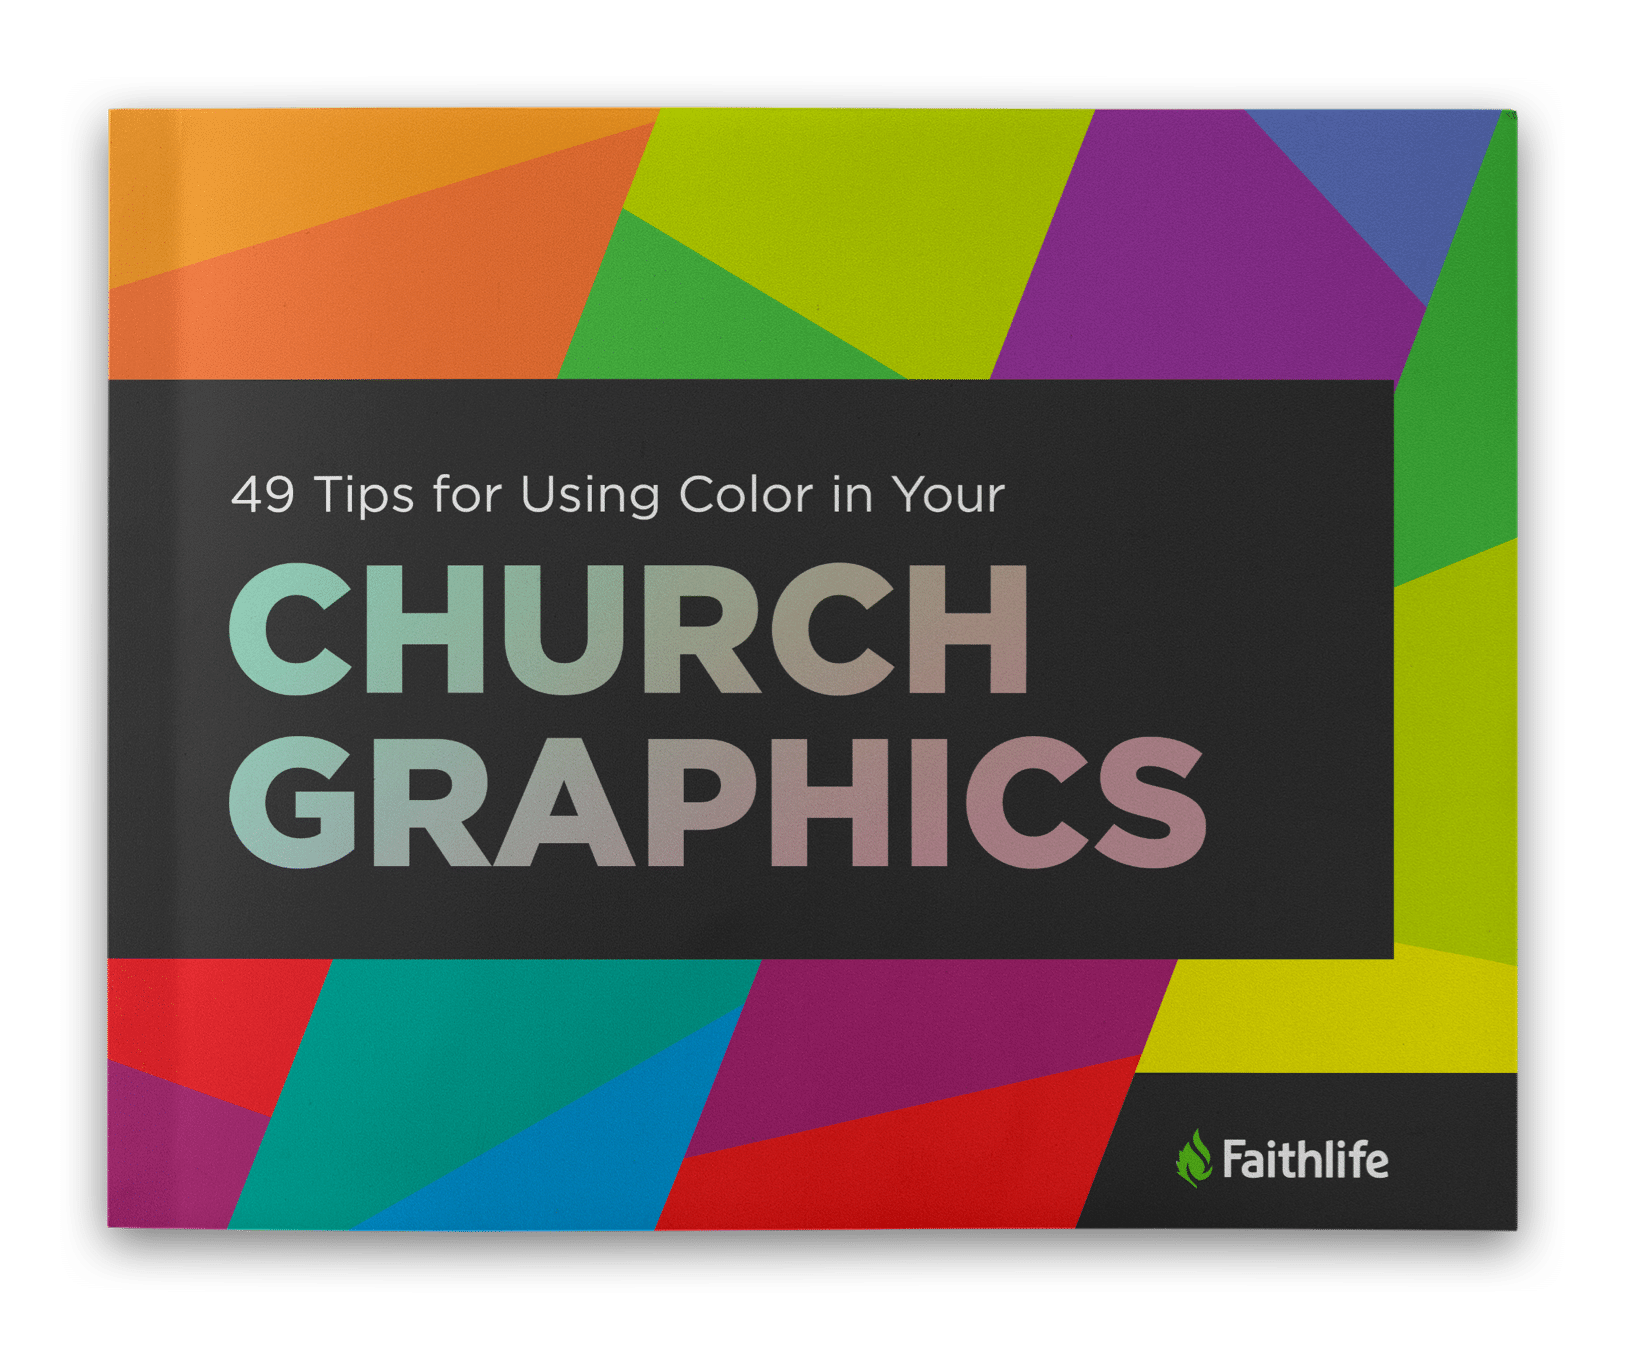 49 Tips for Using Color in Your Church Graphics